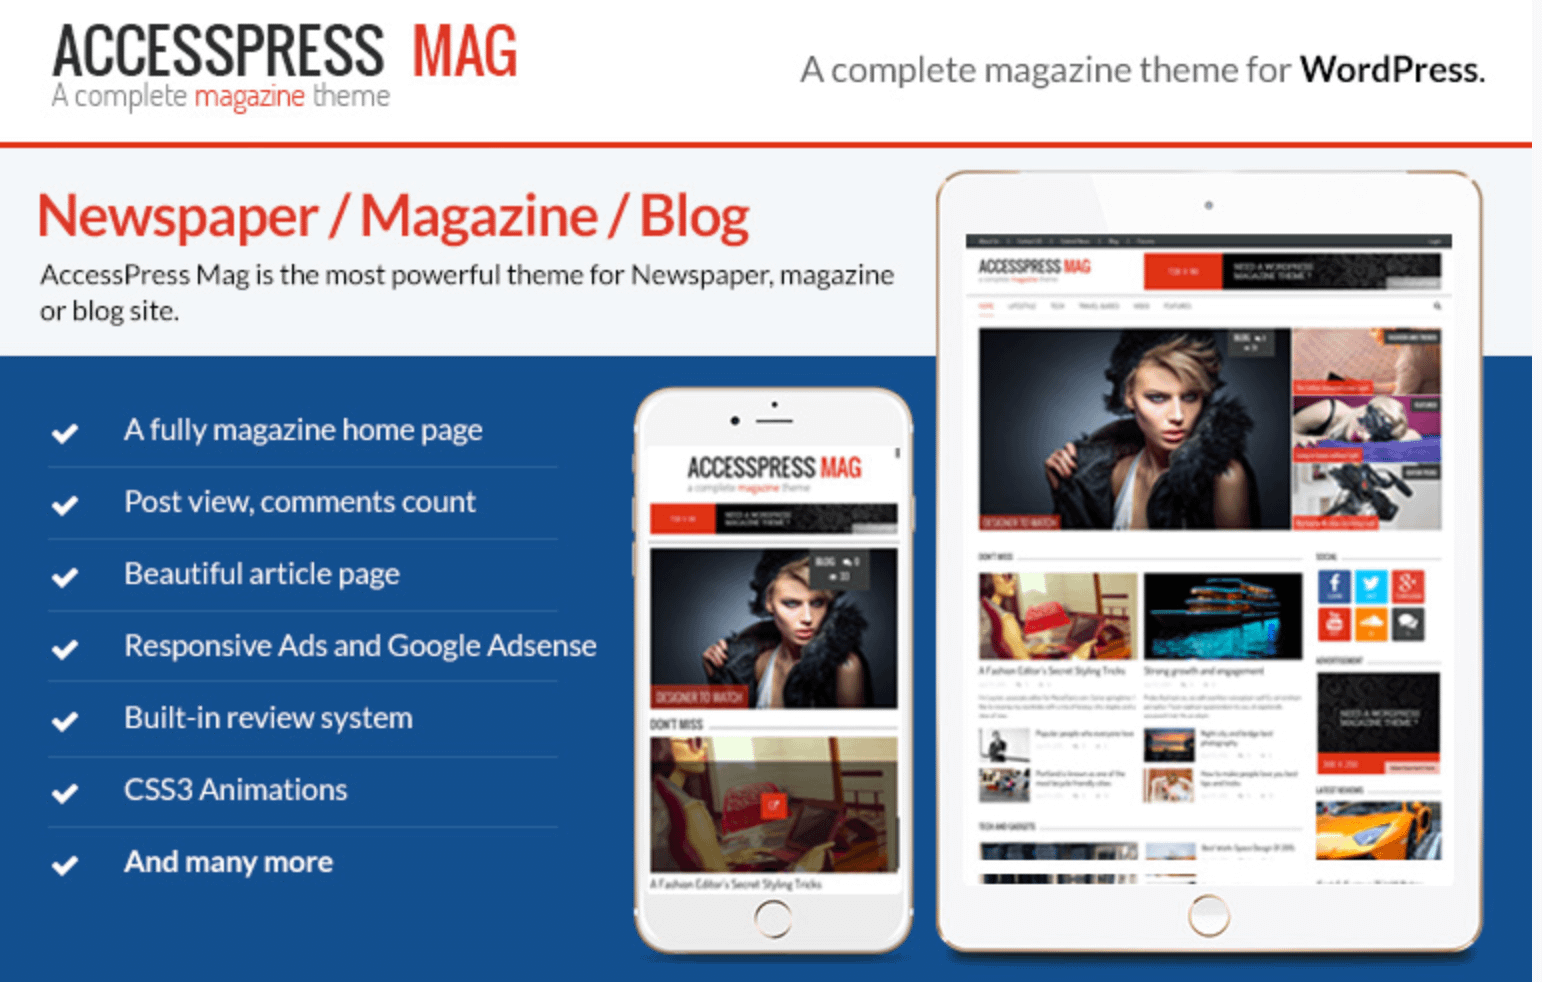 This theme features a news ticker, author block, two-post layout, sticky menu, and large images for pages/posts, along with social media integration.